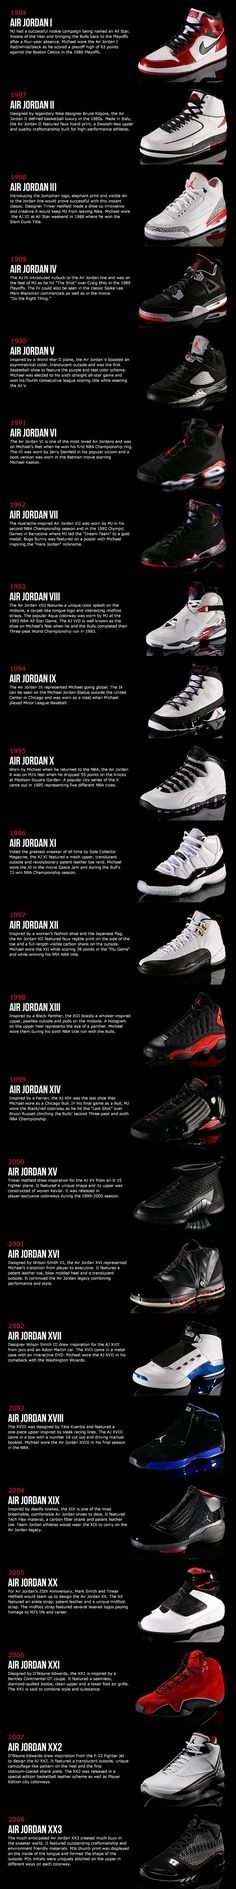 bf937c0a93887c History of Air Jordan Shoes. Air Jordan is a brand of basketball footwear  and athletic clothing produced by Nike and endorsed and created for Chicago  Bulls ...